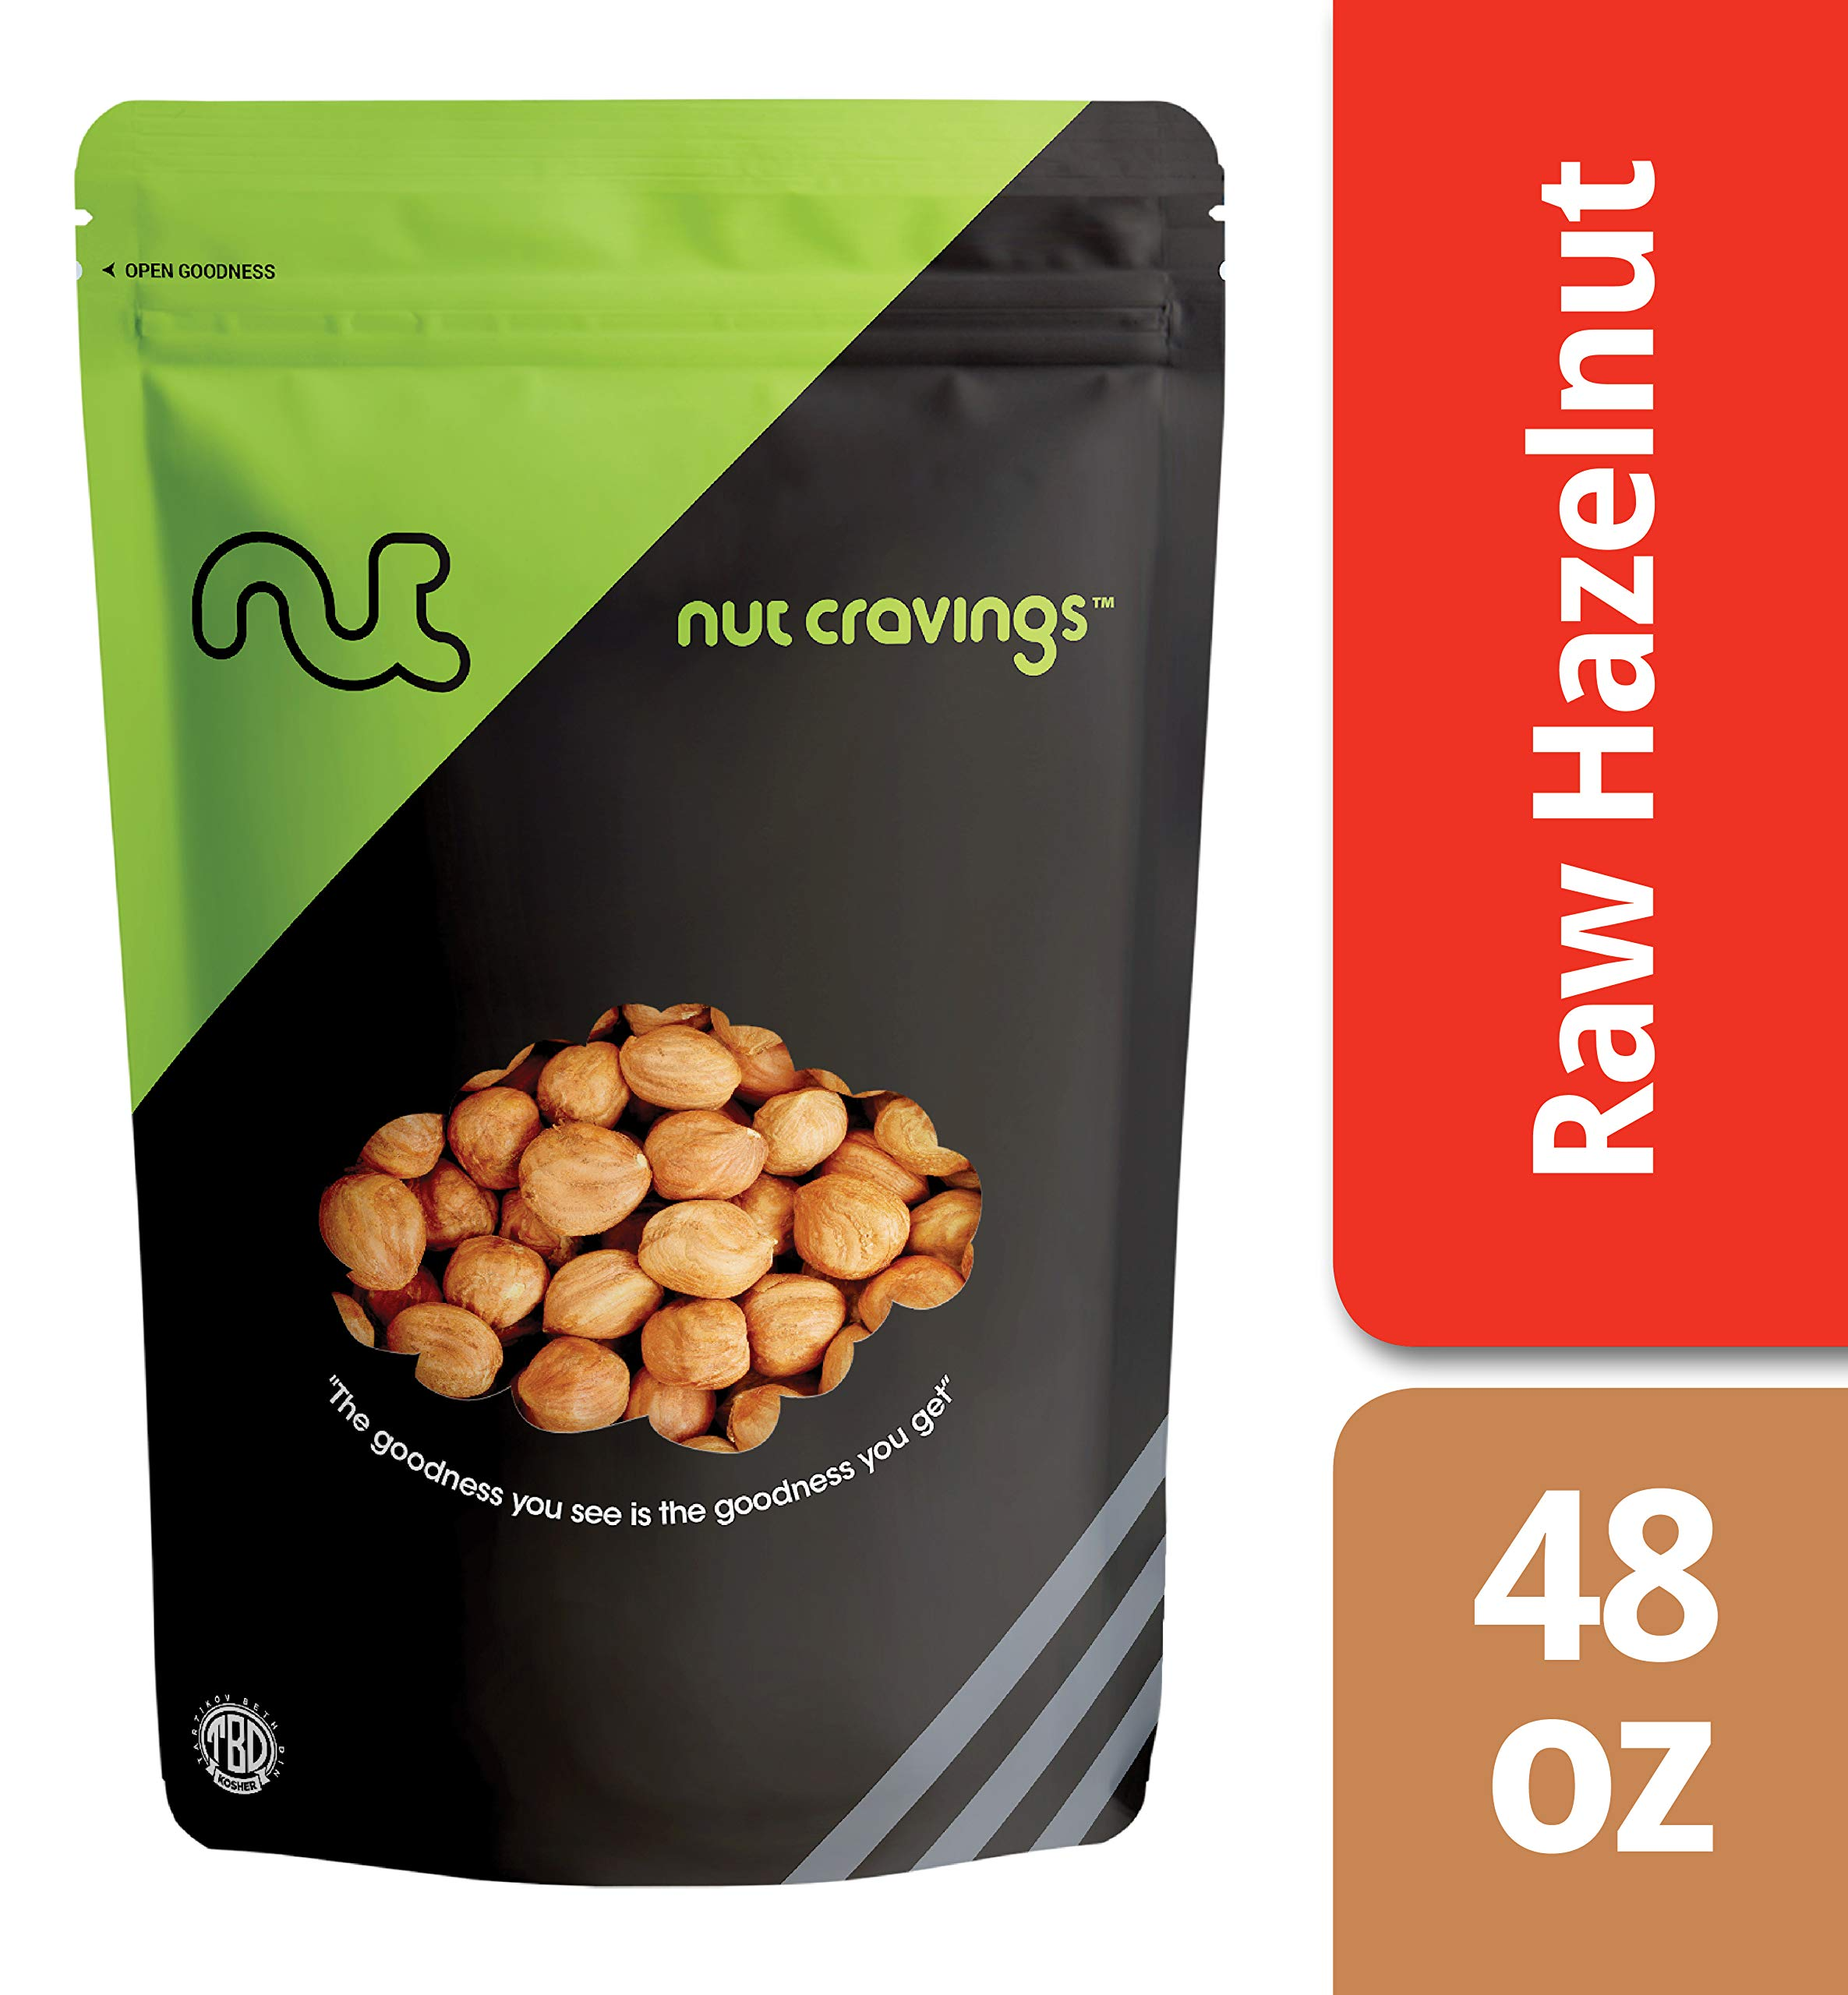 Nut Cravings - Raw Hazelnuts With Skin (3 Pounds) – Gourmet Resealable Pack of Shelled Filberts – 48 Ounce